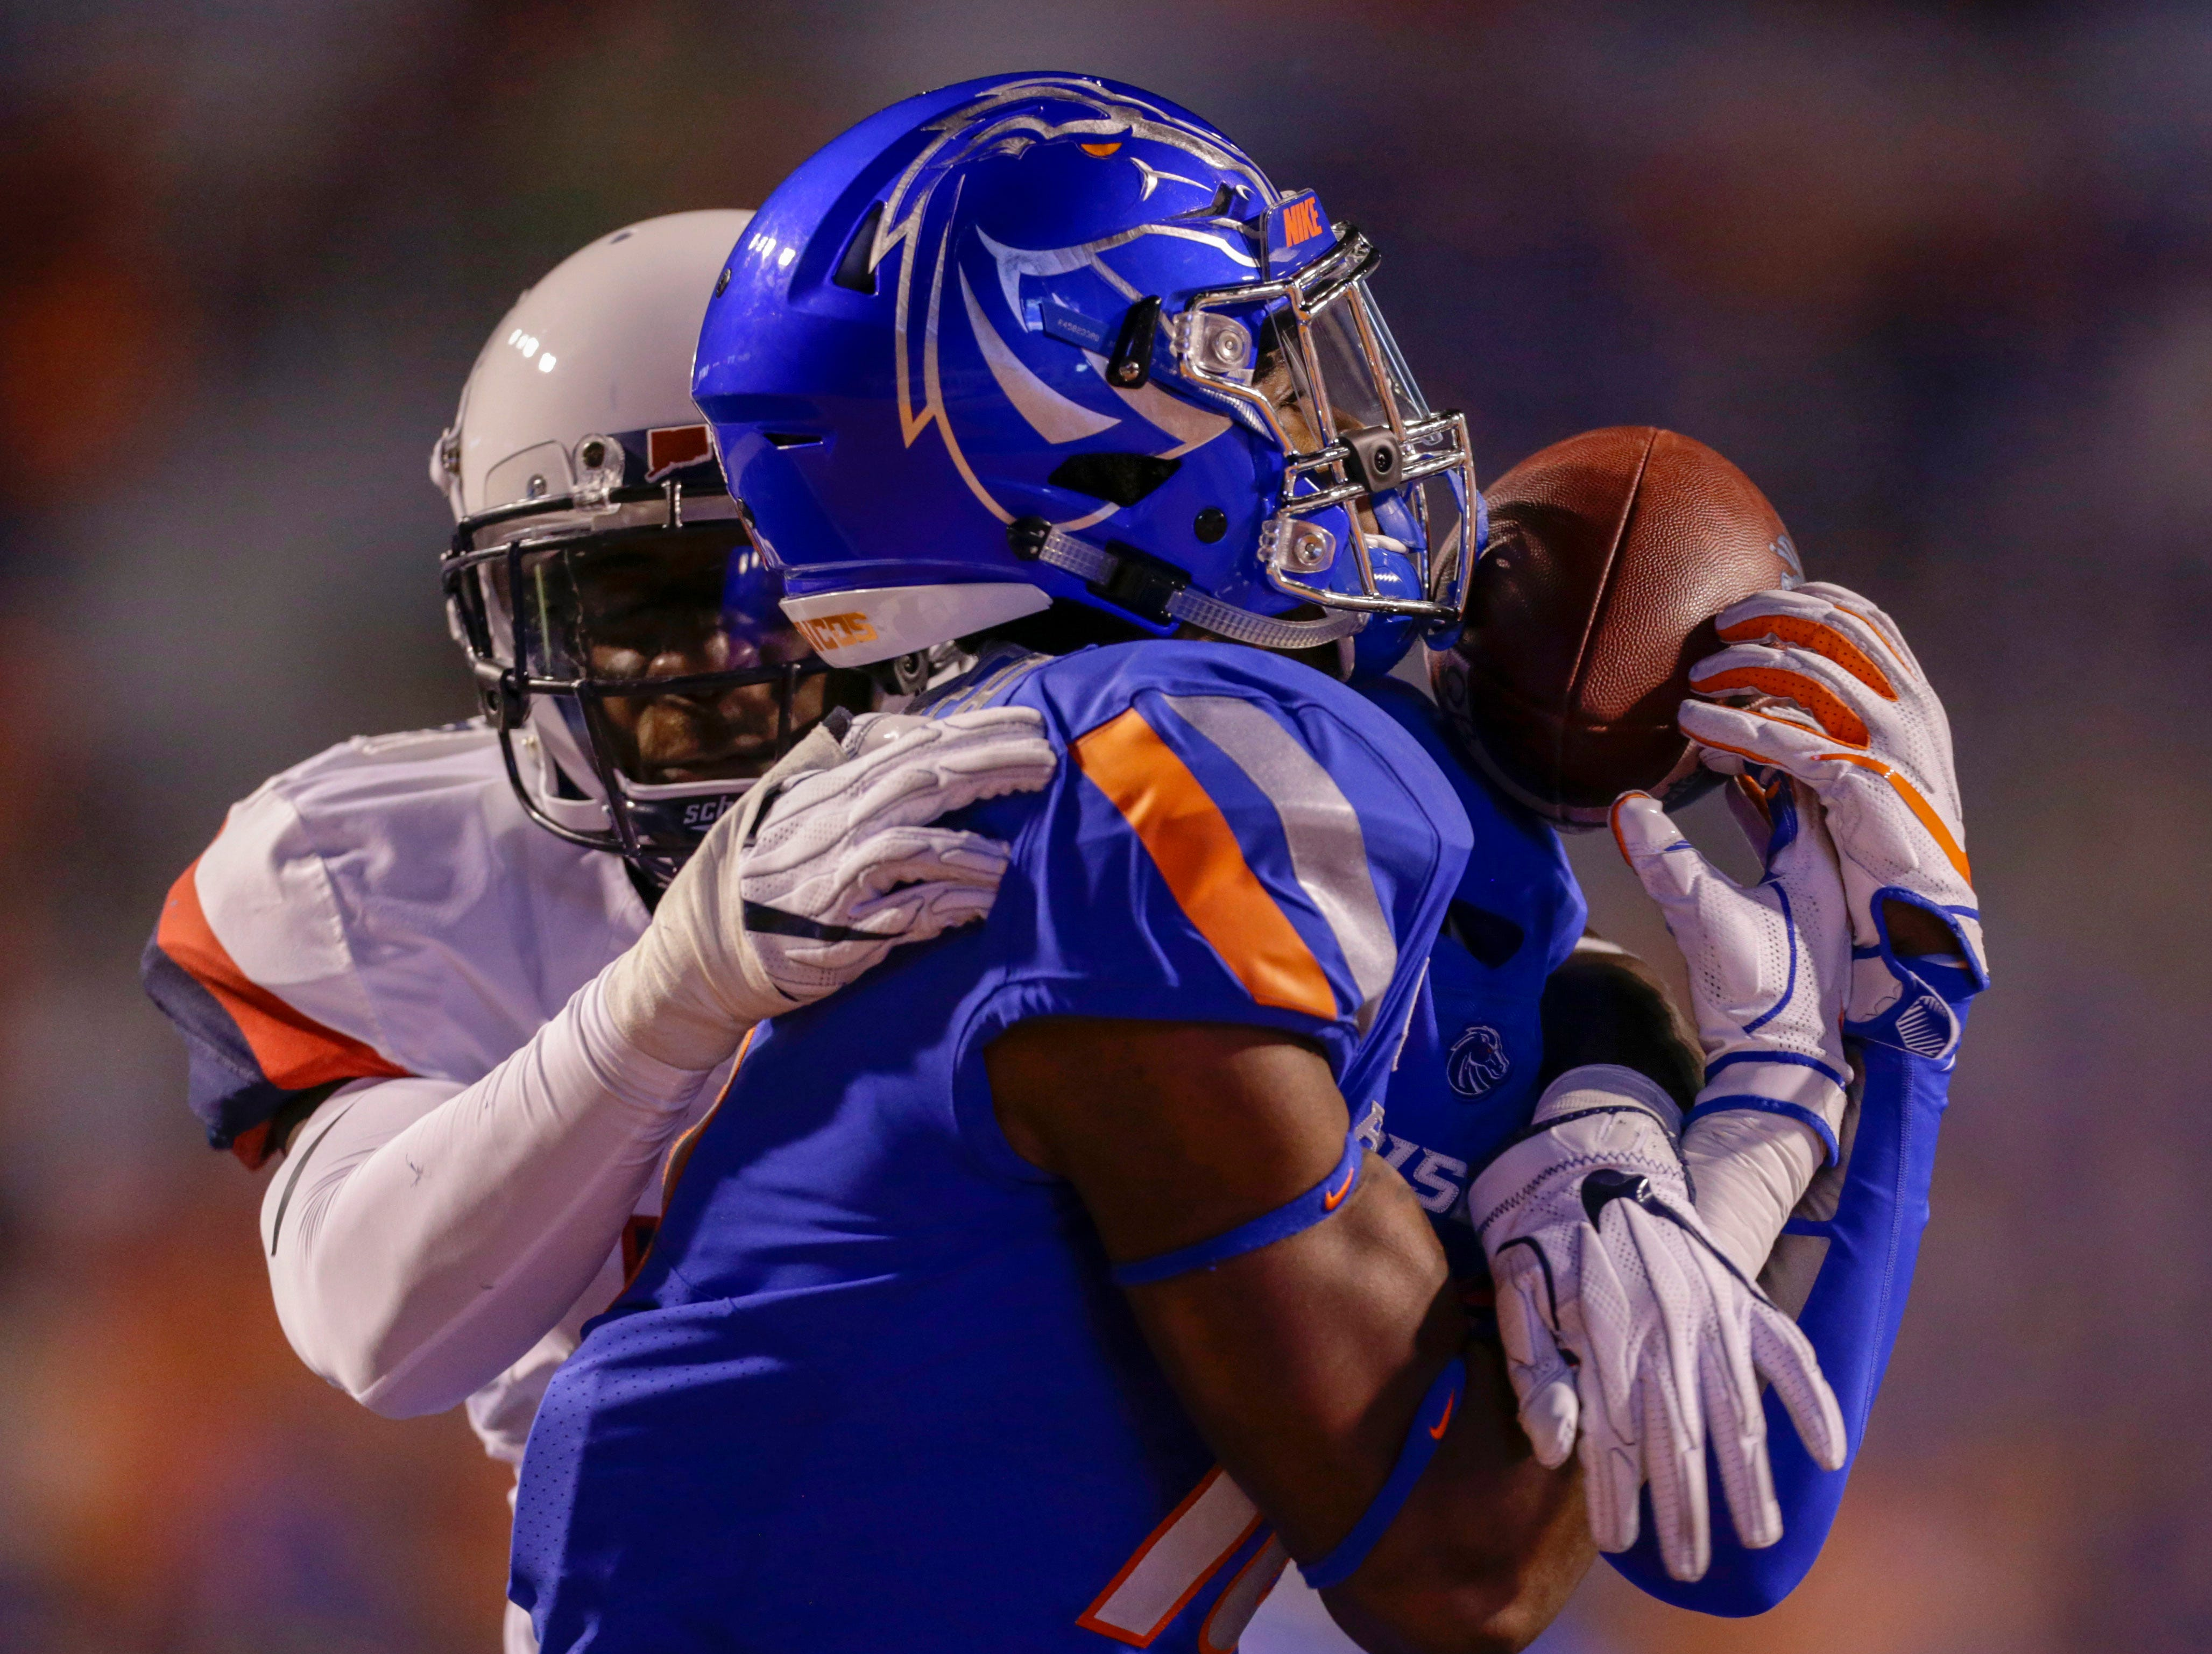 Boise State Broncos wide receiver John Hightower (16) attempts to catch long pass only to have it broken up by Connecticut Huskies safty Omar Fortt (27) during second half action at Albertsons Stadium